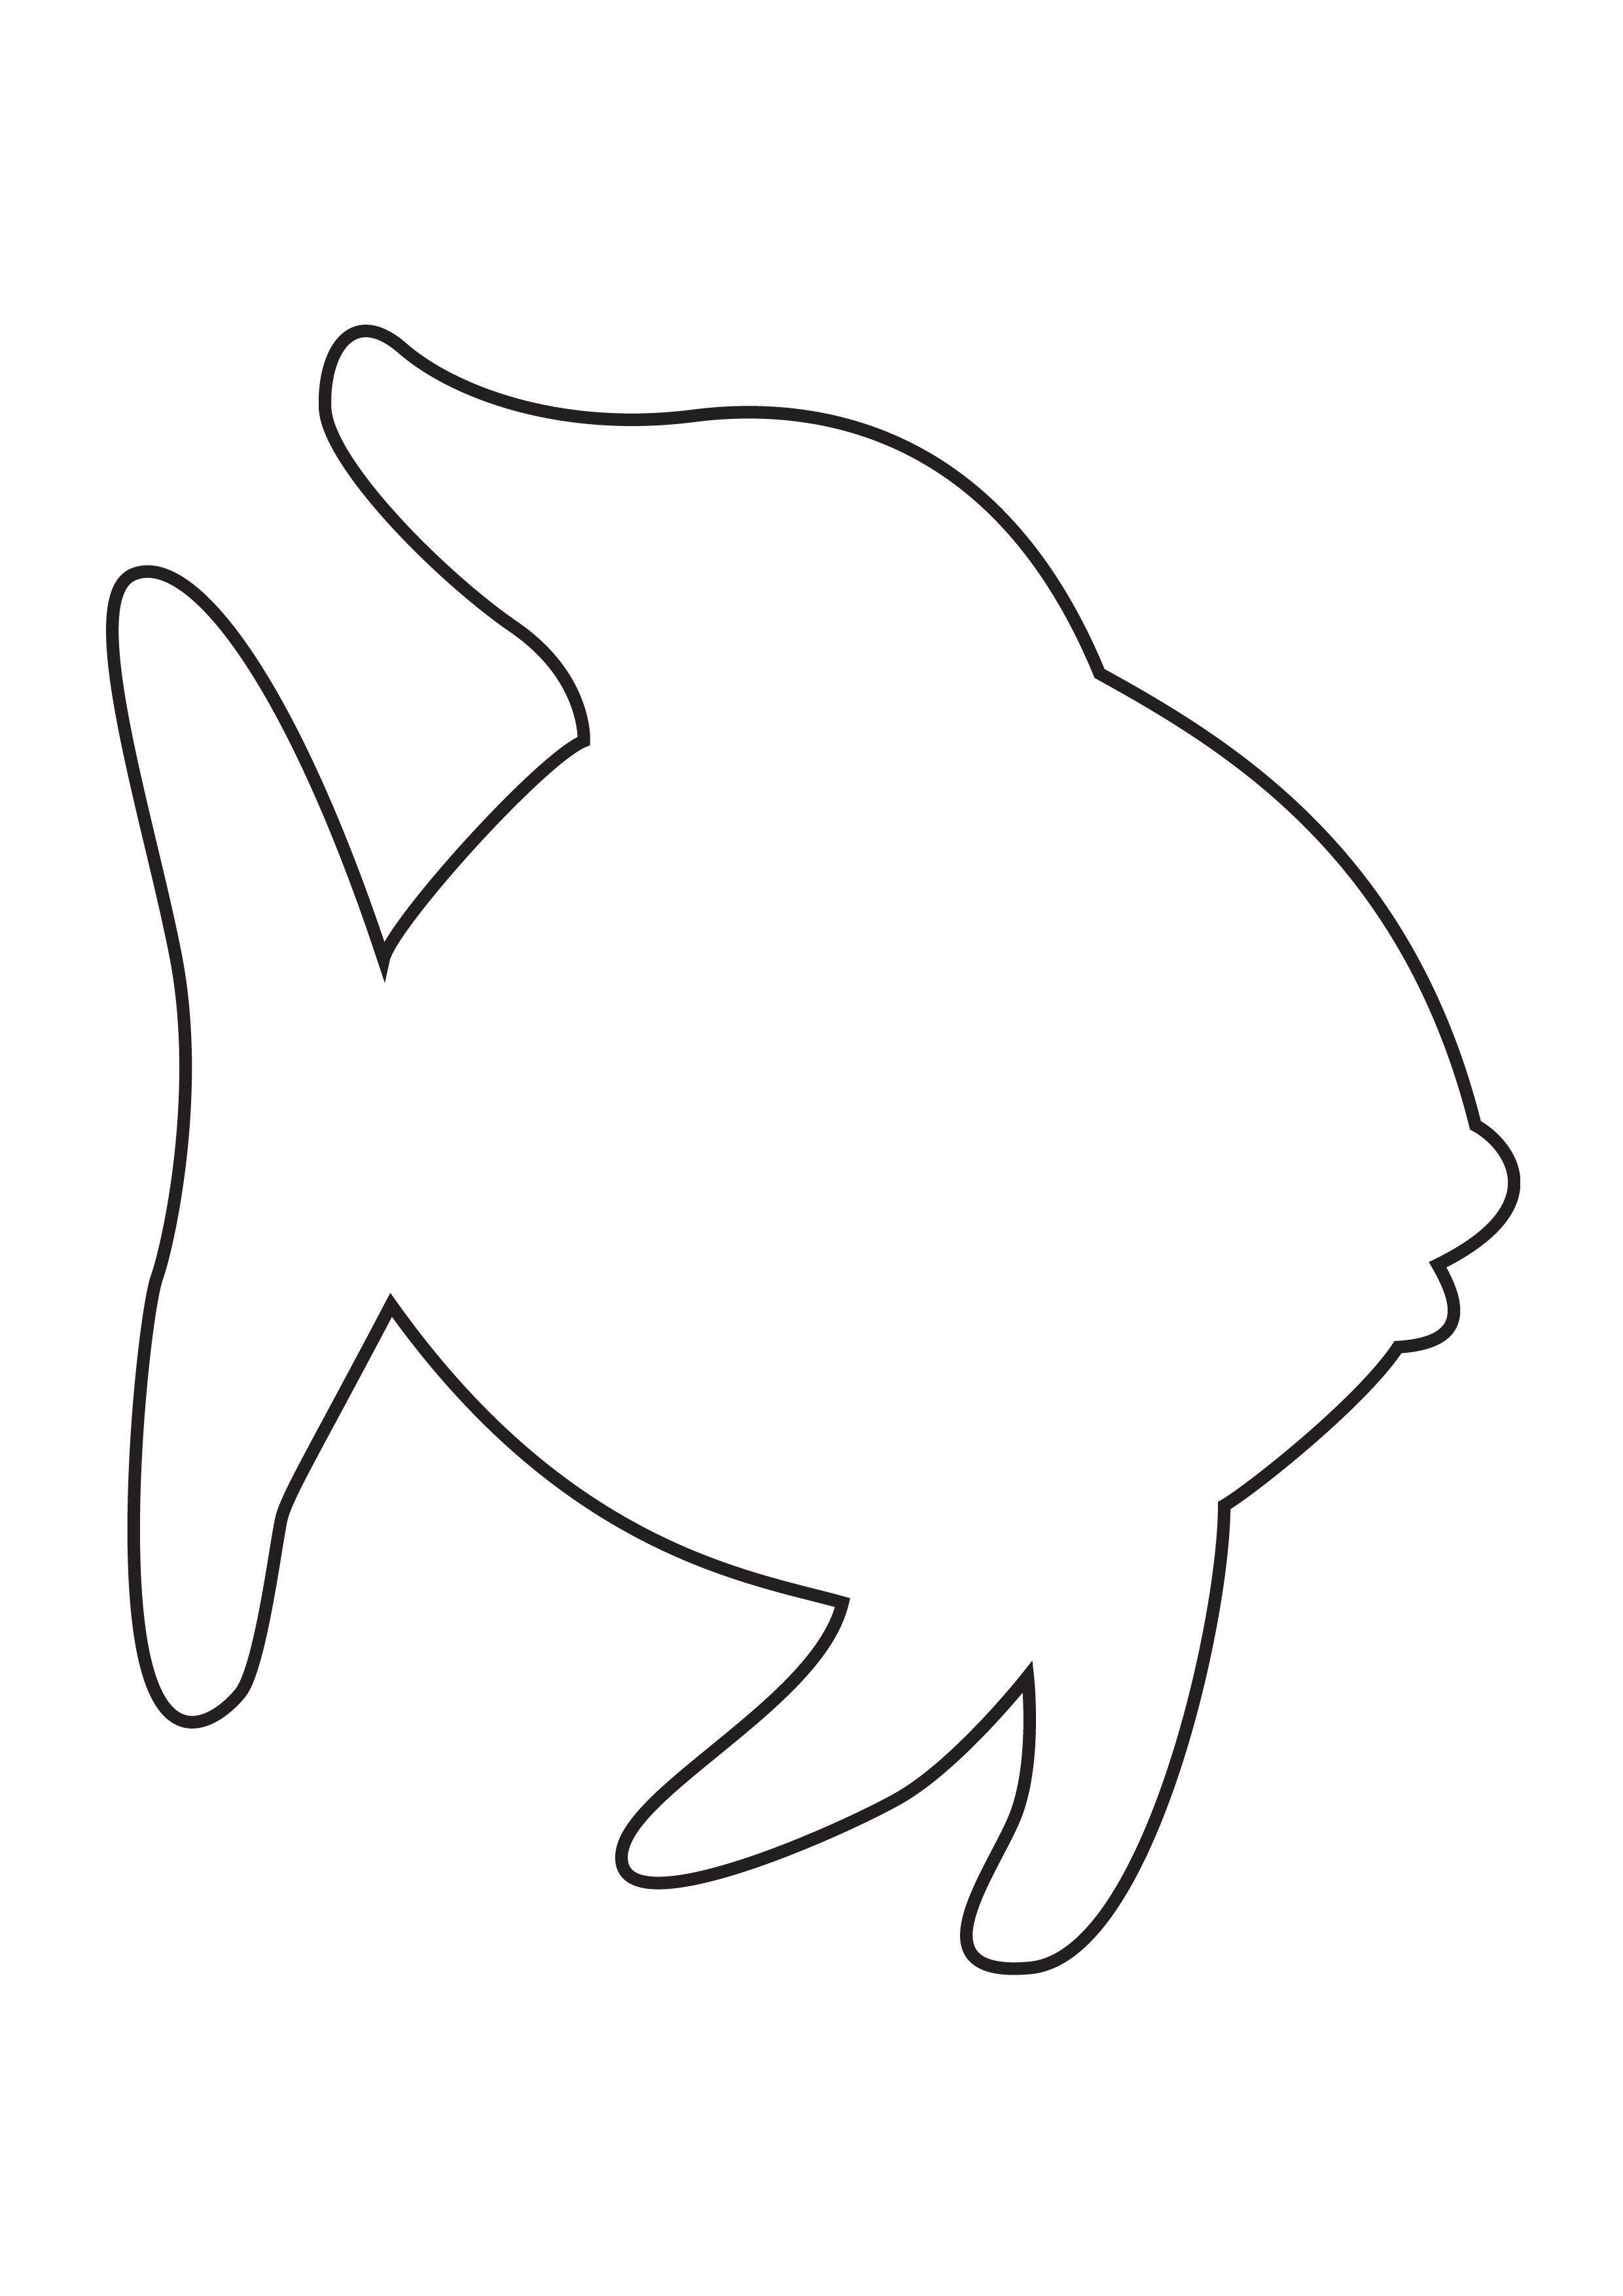 fish outline